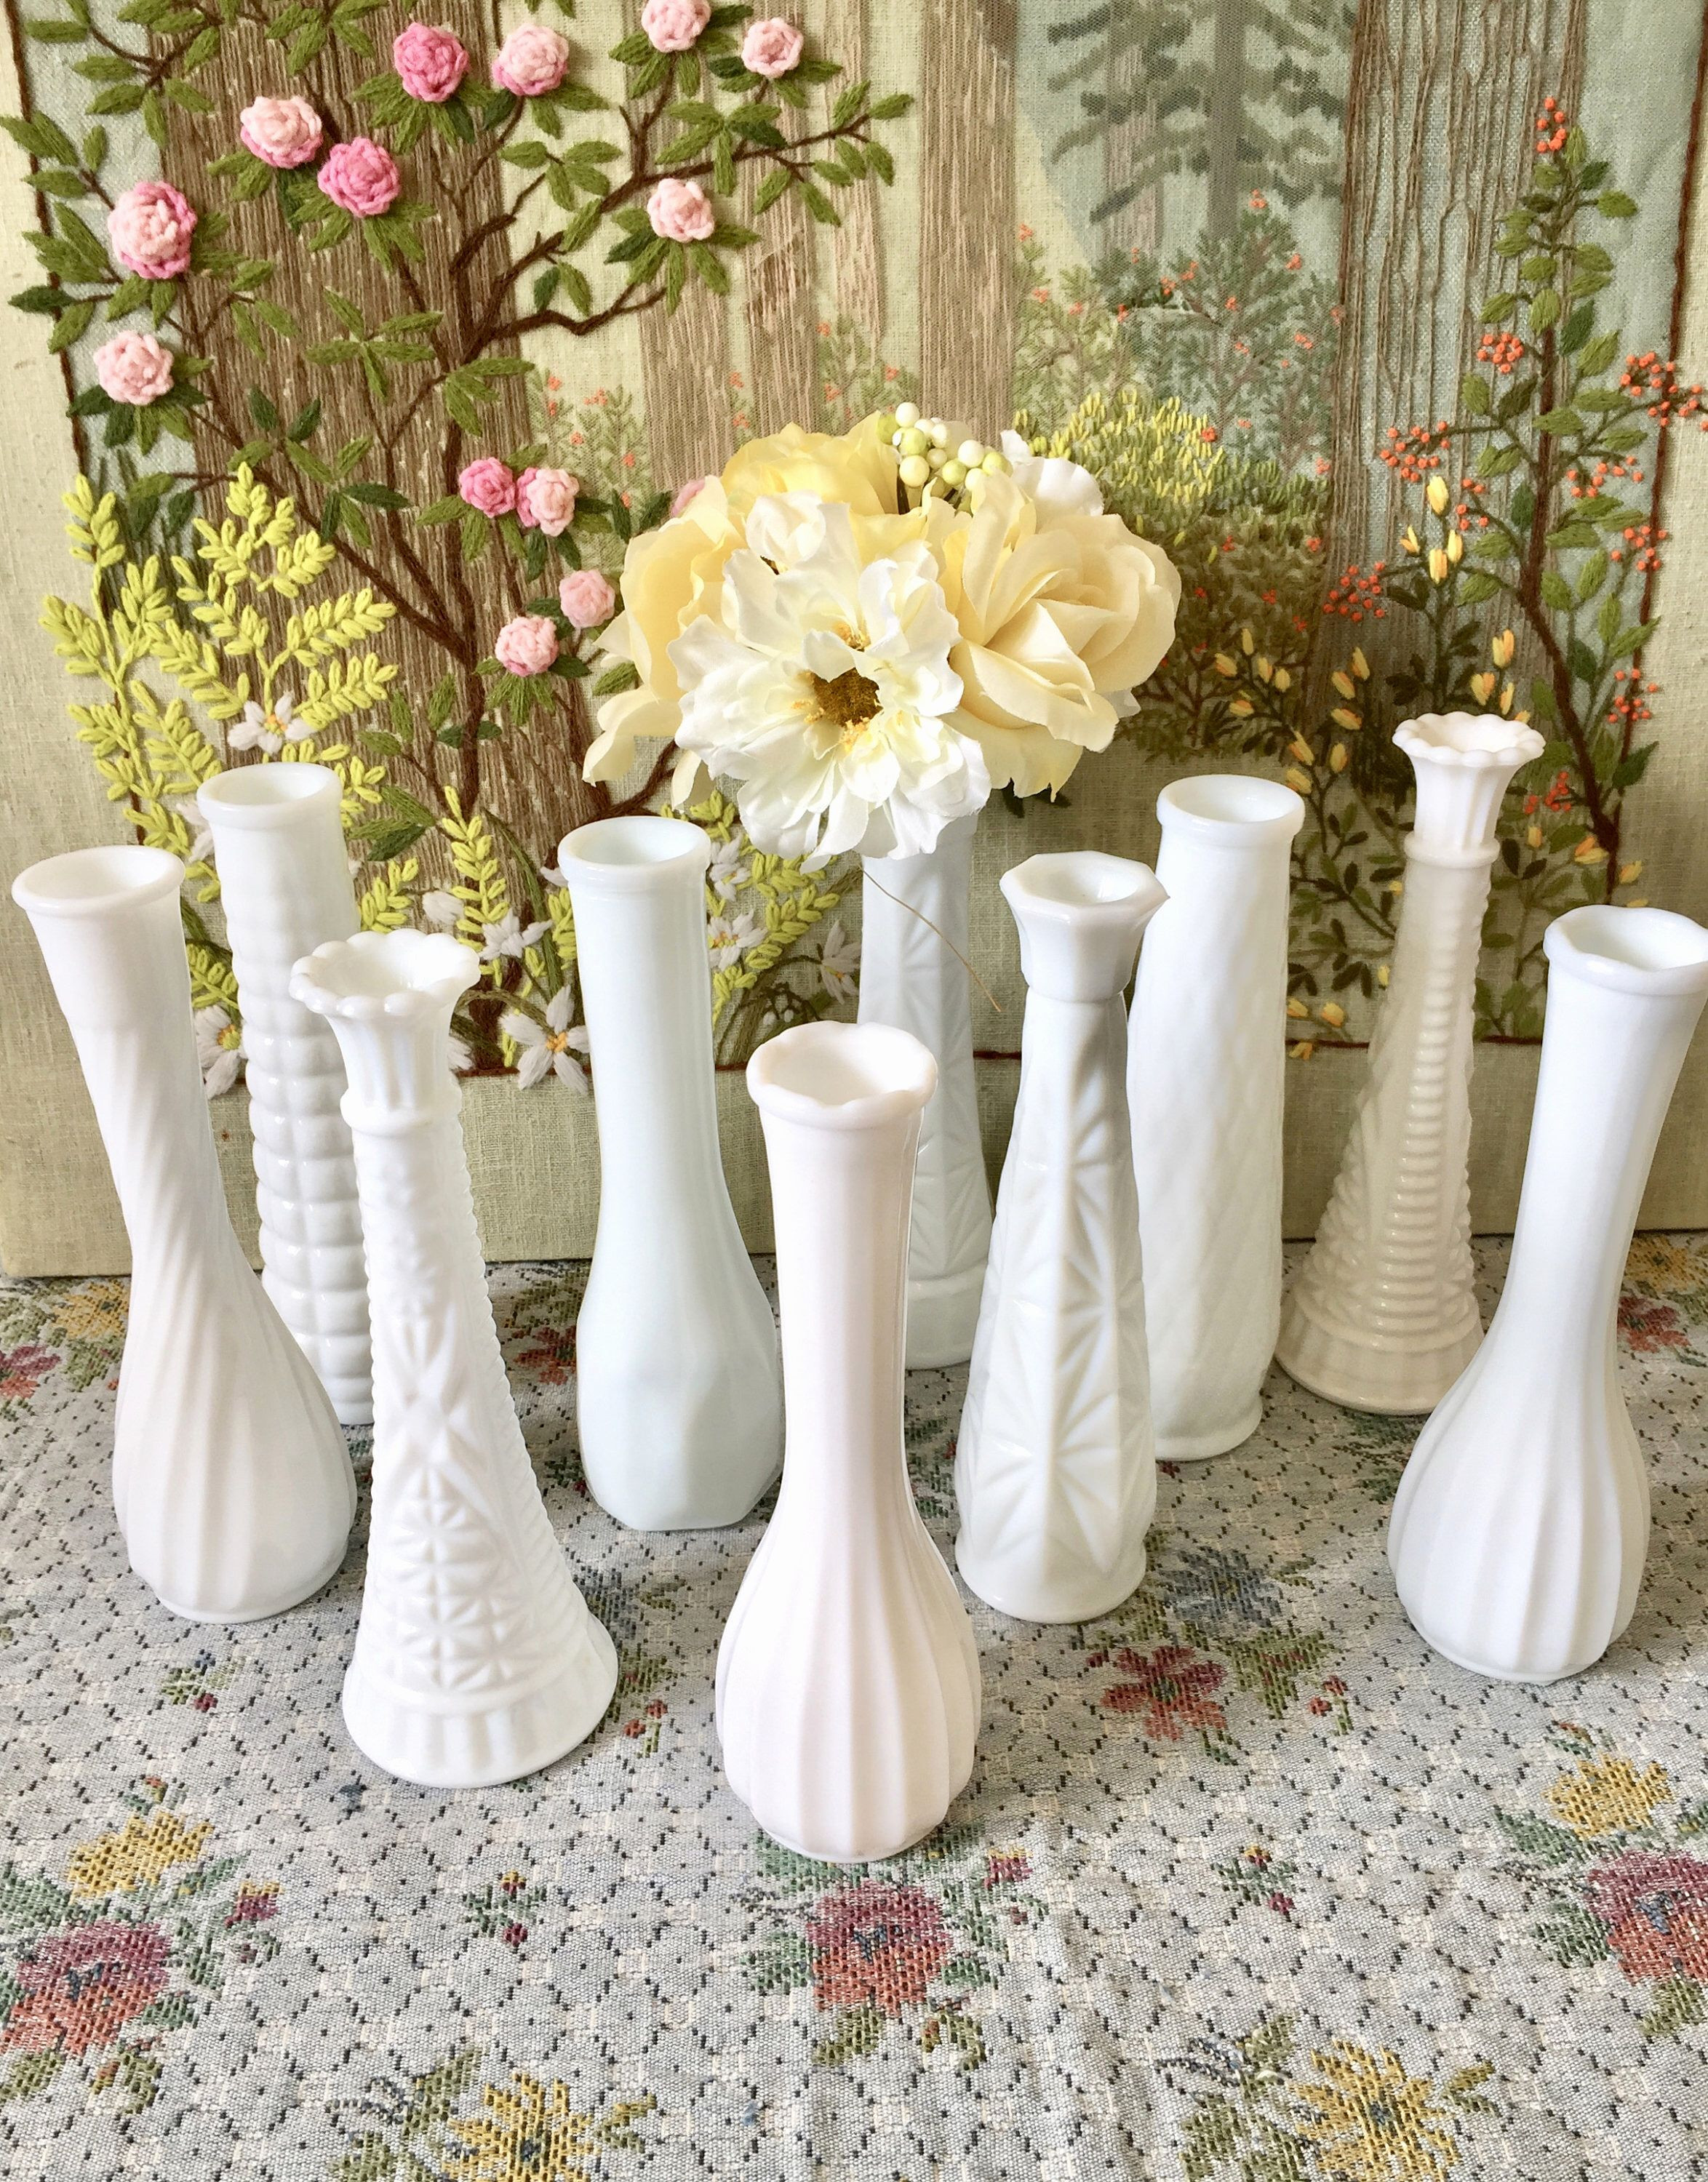 14 attractive Small Crystal Vases wholesale